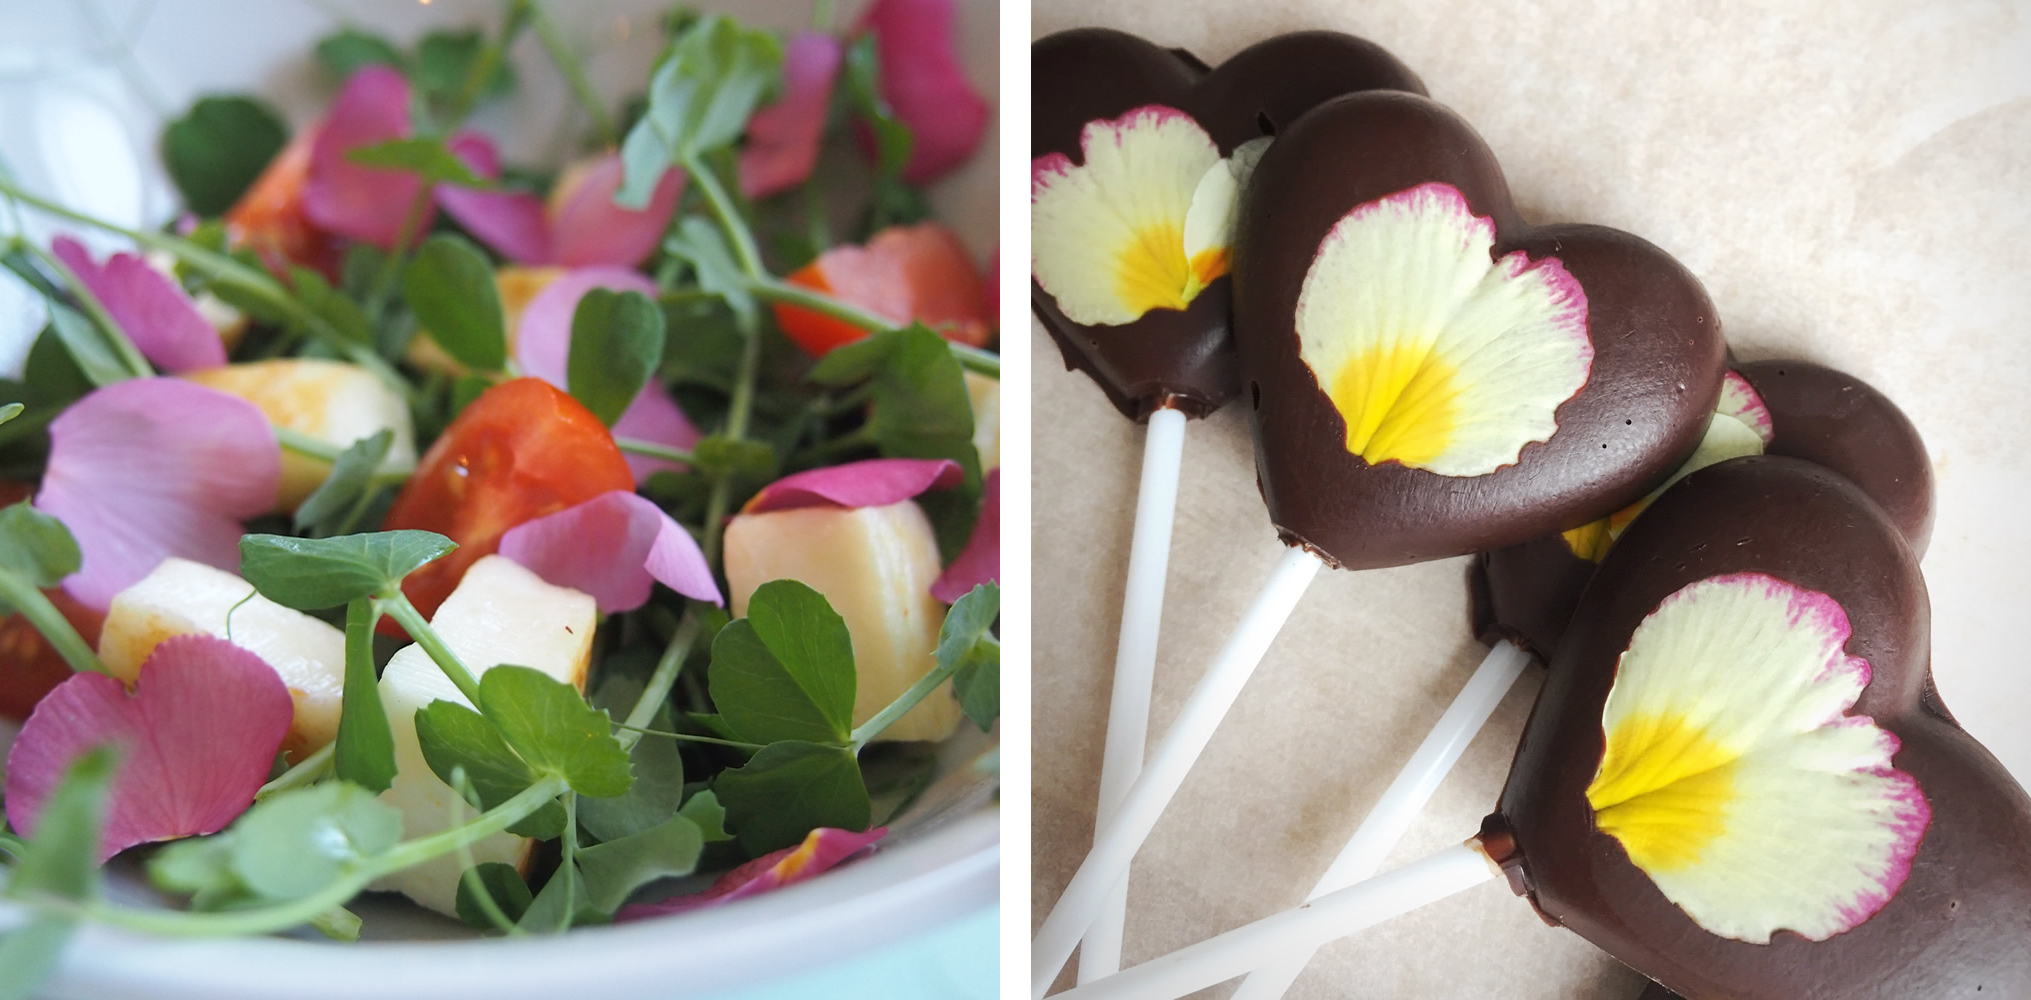 Salad with primrose petals and lollipops with primrose petals